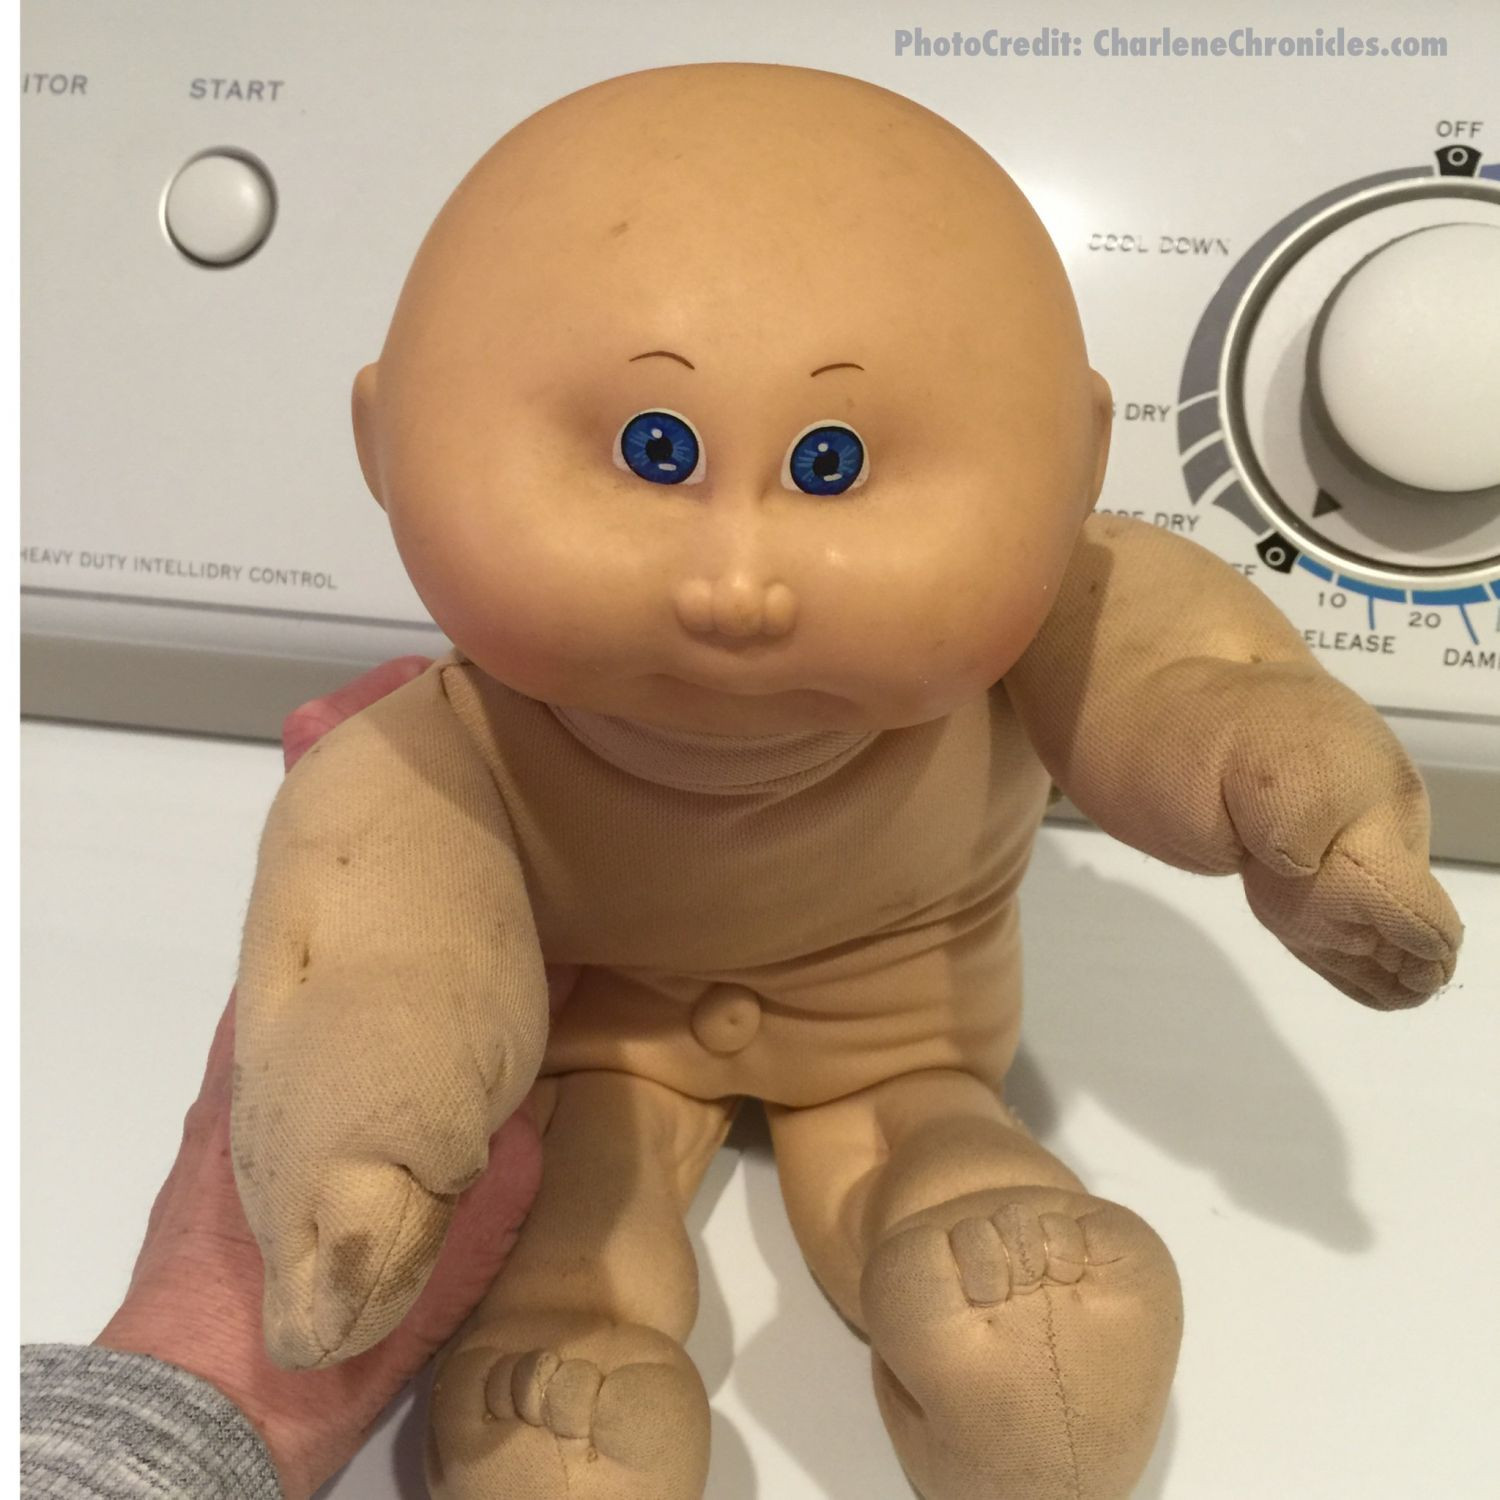 Clean Vintage Cabbage Patch Kid Toy Reviews The Toy